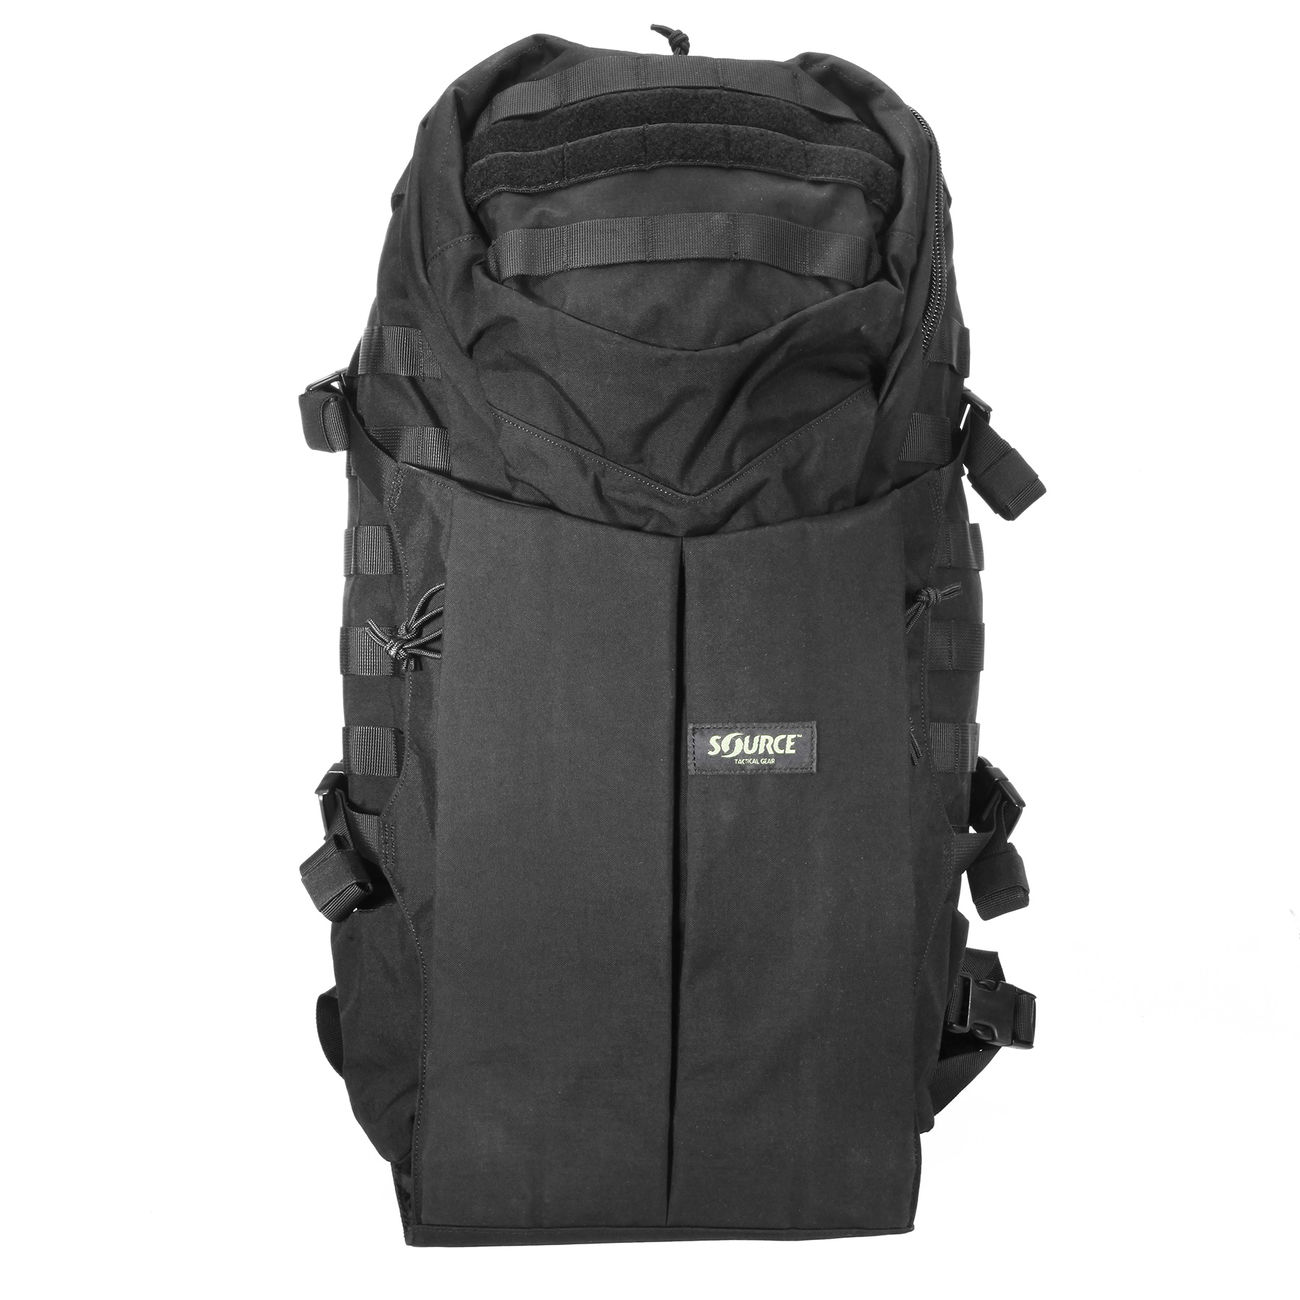 Source Tactical Gear Trinkrucksack Double D45 L schwarz 1